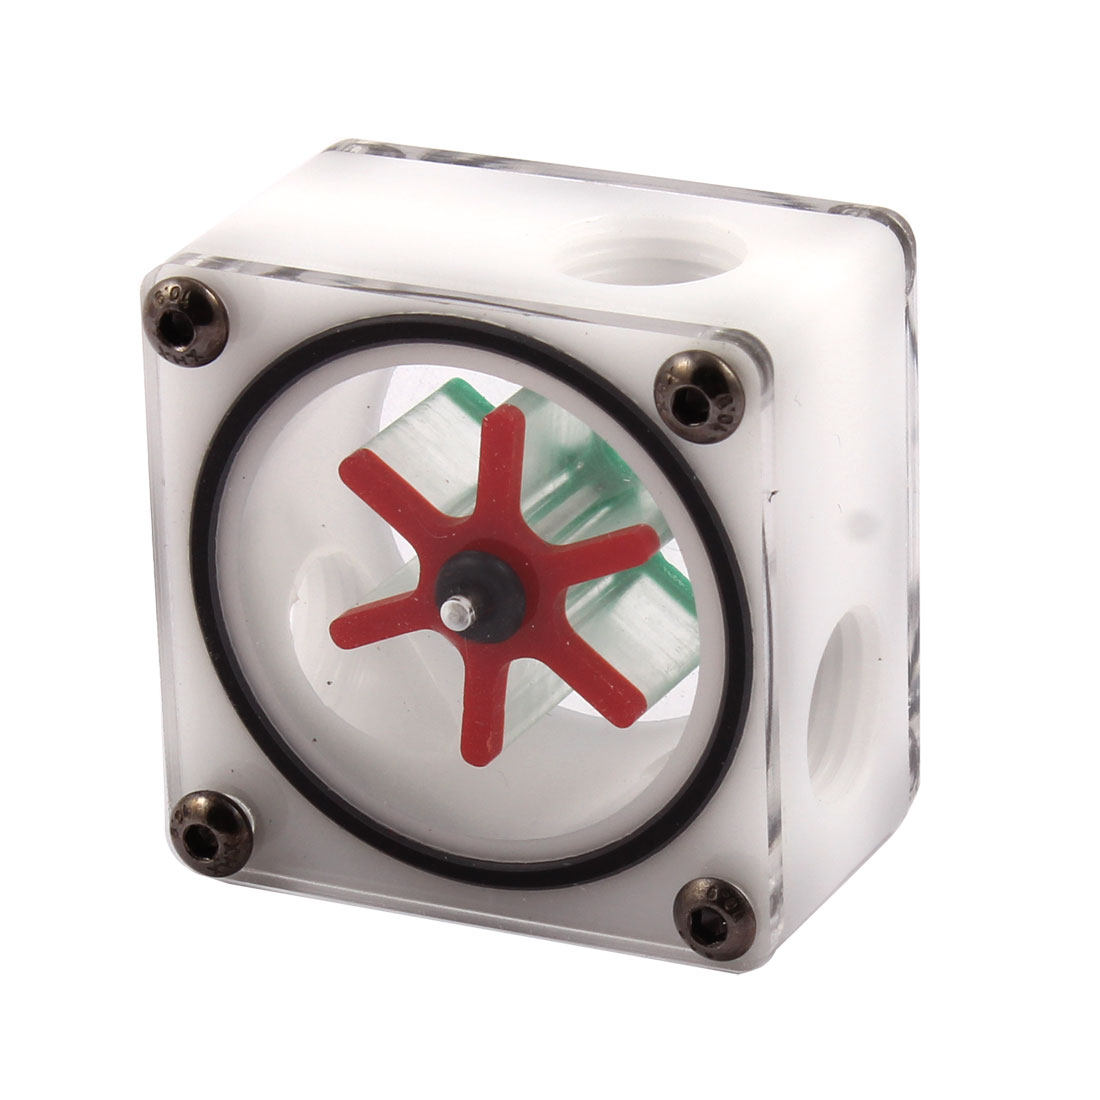 Acrylic 3 Way G1/4 Threaded Square Water Cooling Flow Meter White Without Barb